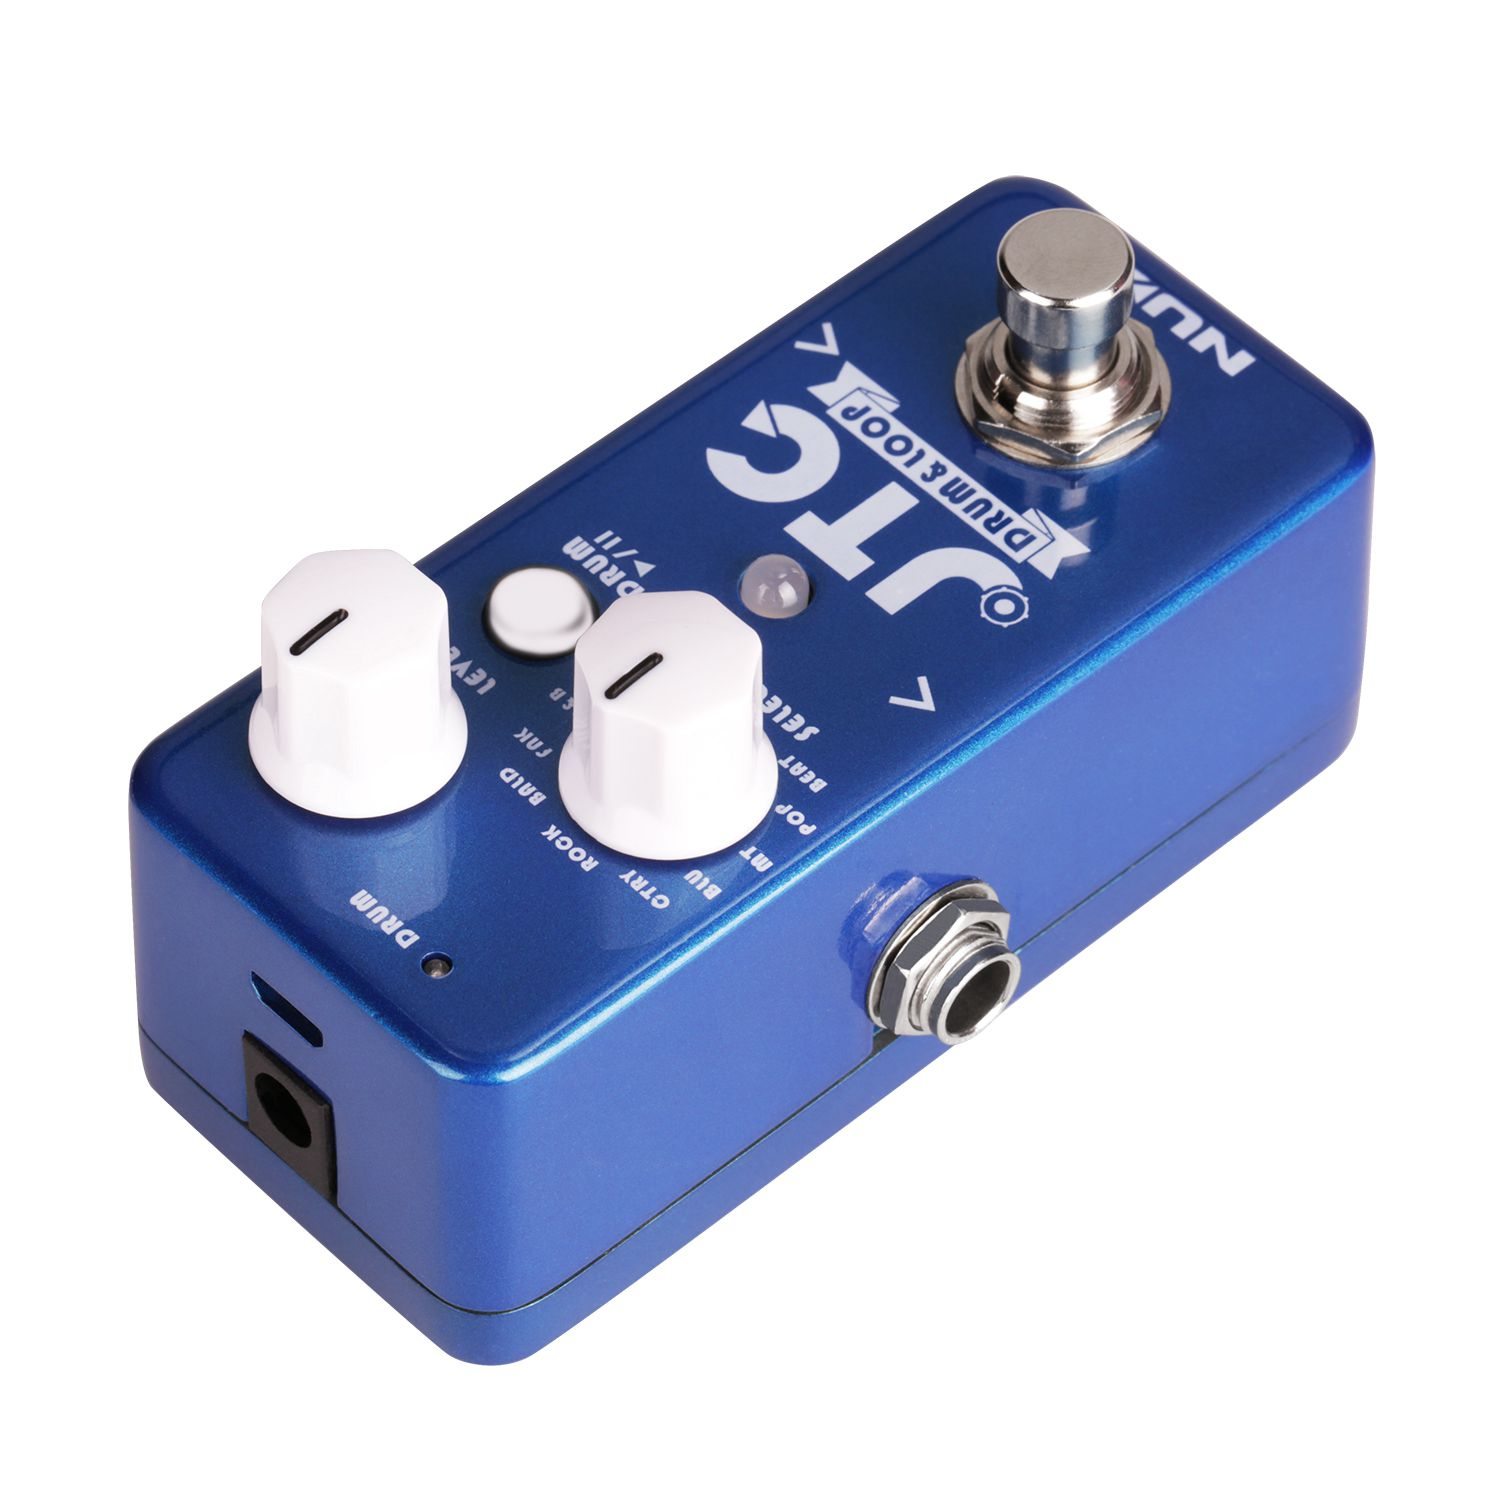 NUX NDL-2 JTC Drum Loop Guitar Effect Pedal Looper 6 Minutes Recording Time 10 Drum Rhythms Smart Tap Tempo Drum MachineNUX NDL-2 JTC Drum Loop Guitar Effect Pedal Looper 6 Minutes Recording Time 10 Drum Rhythms Smart Tap Tempo Drum Machine